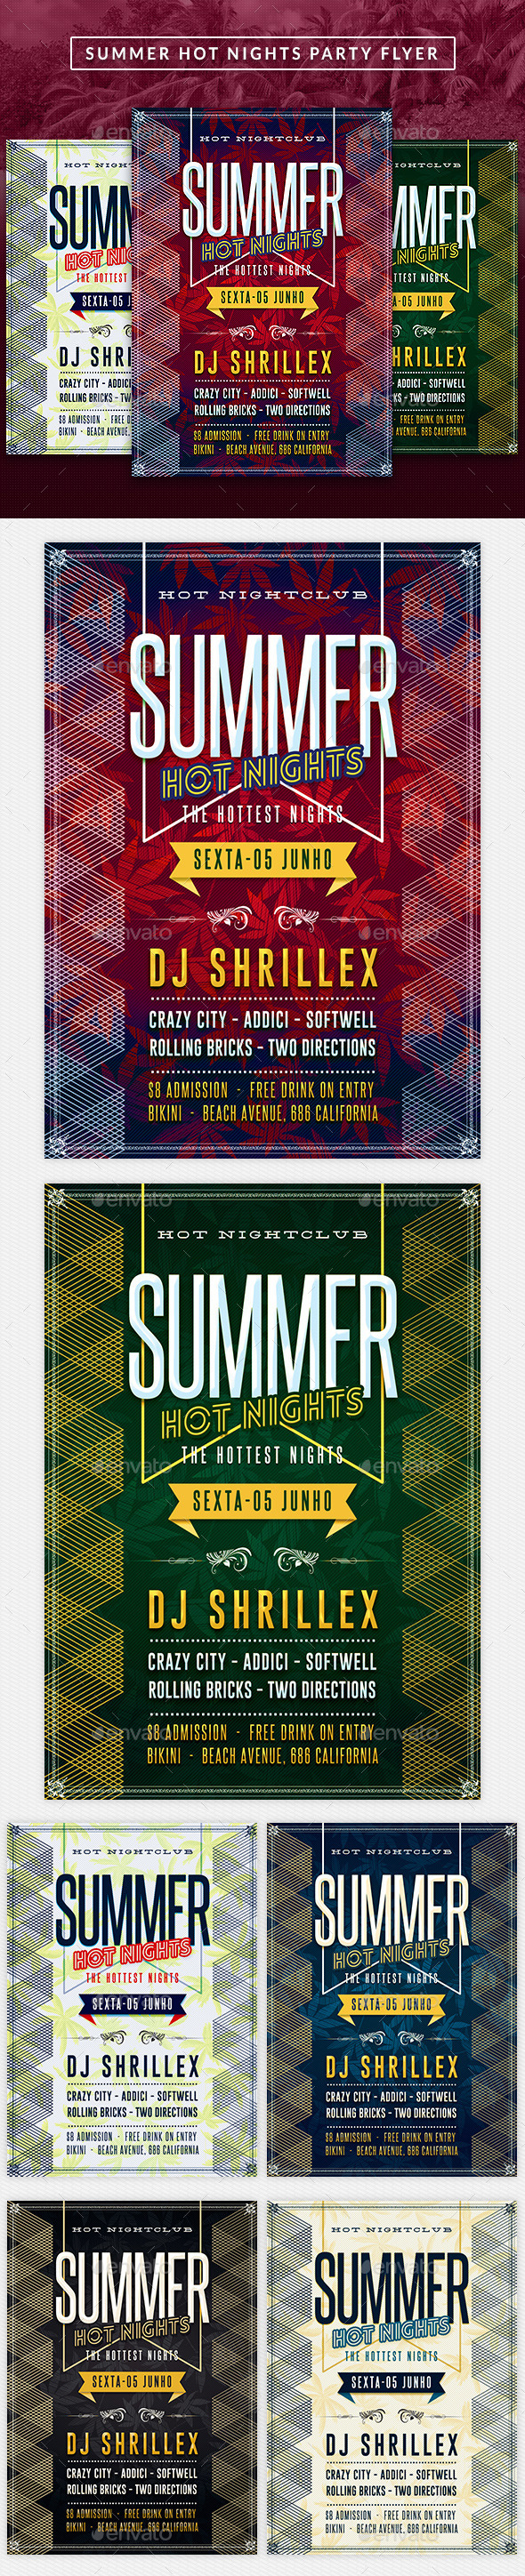 Summer Hot Nights Party Flyer - Clubs & Parties Events